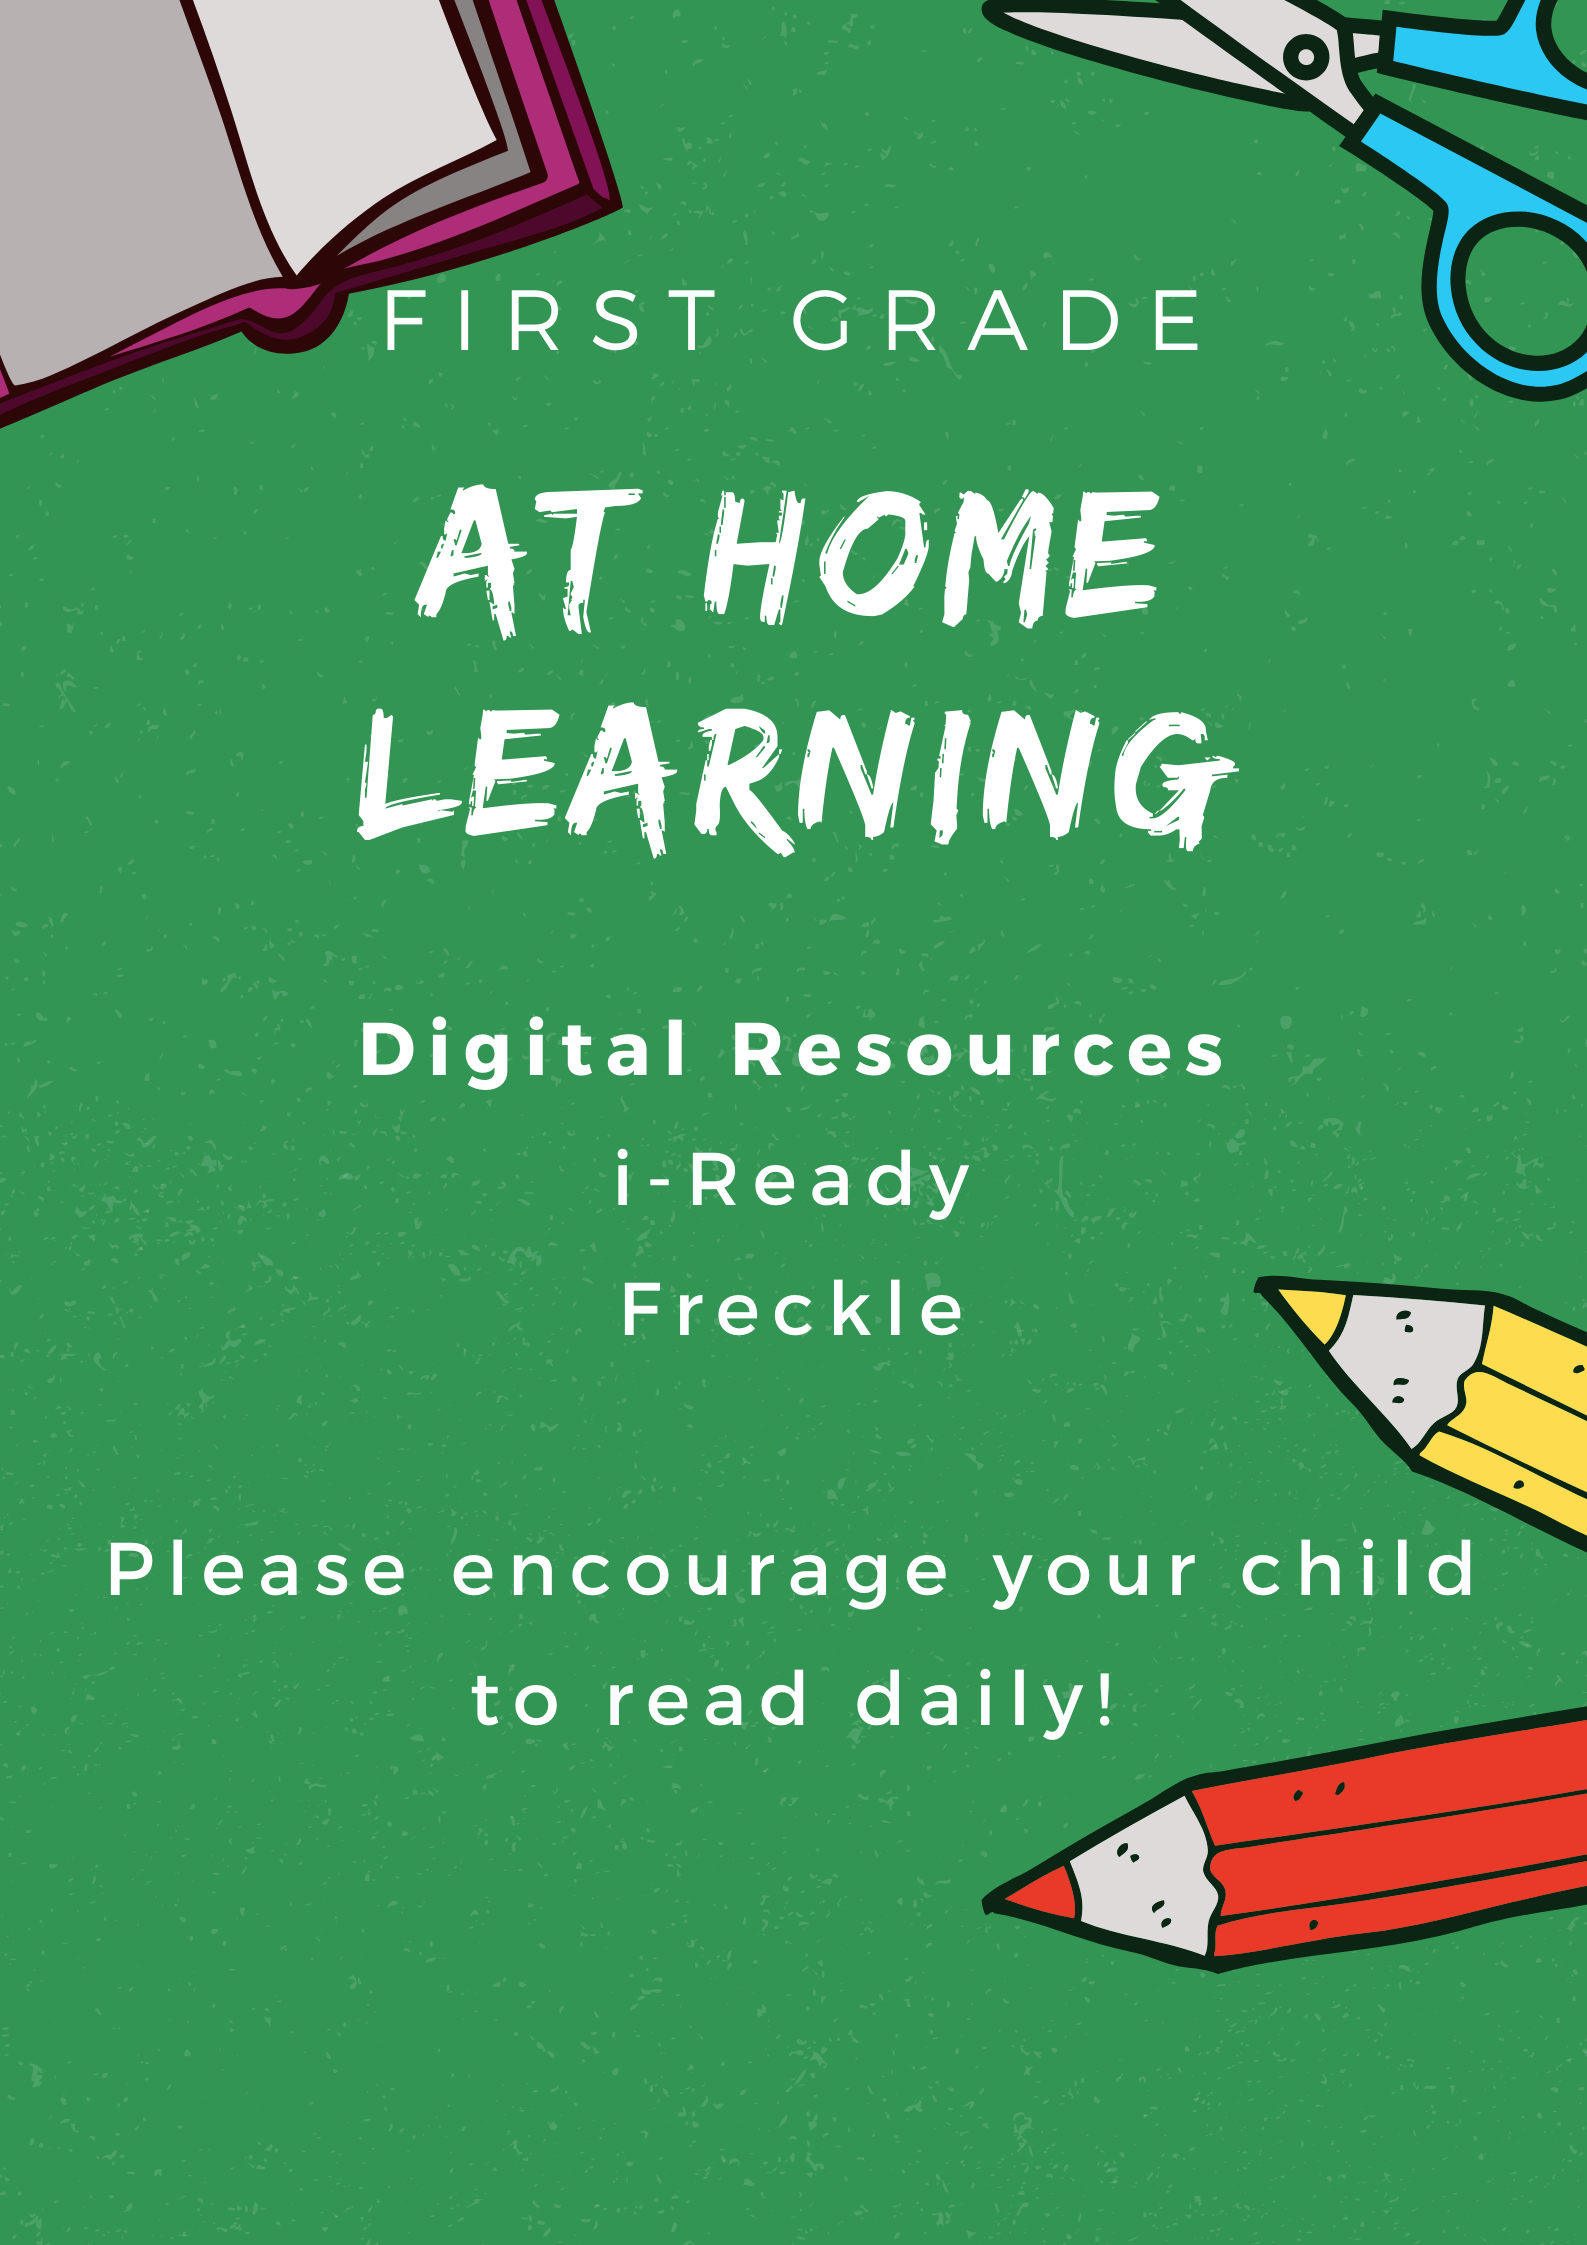 First Grade At Home Learning